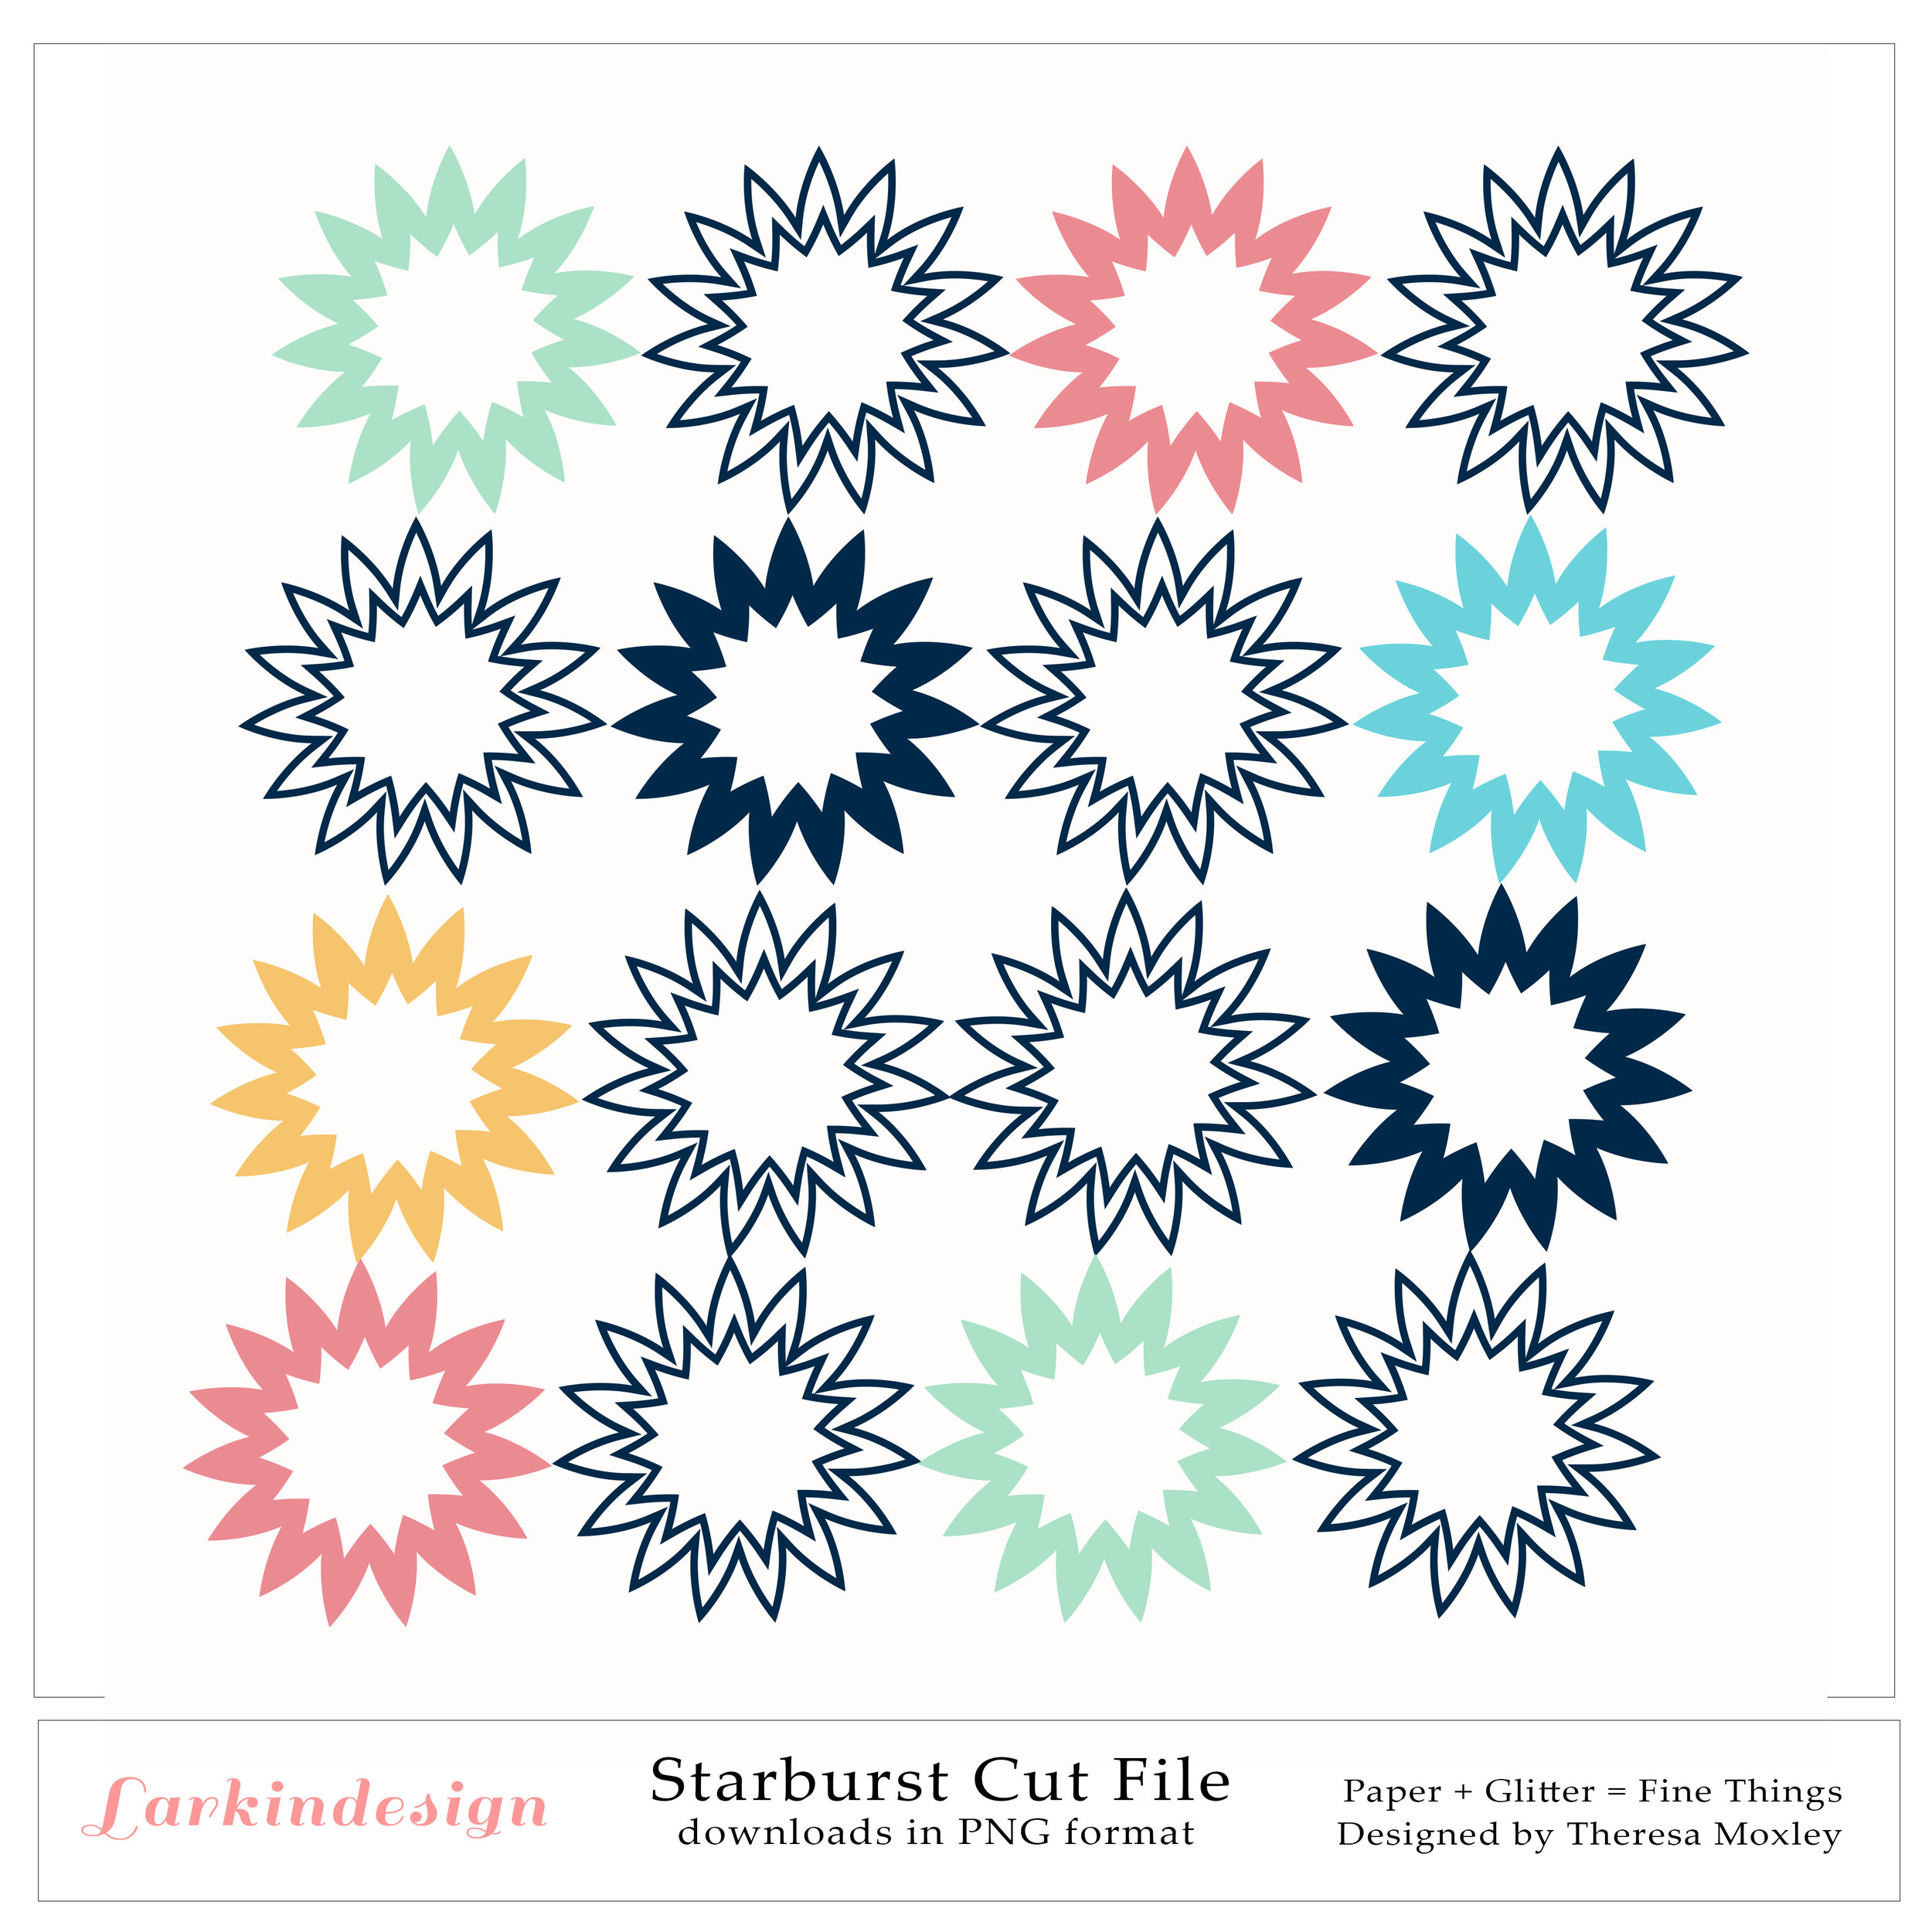 Starburst Cut File